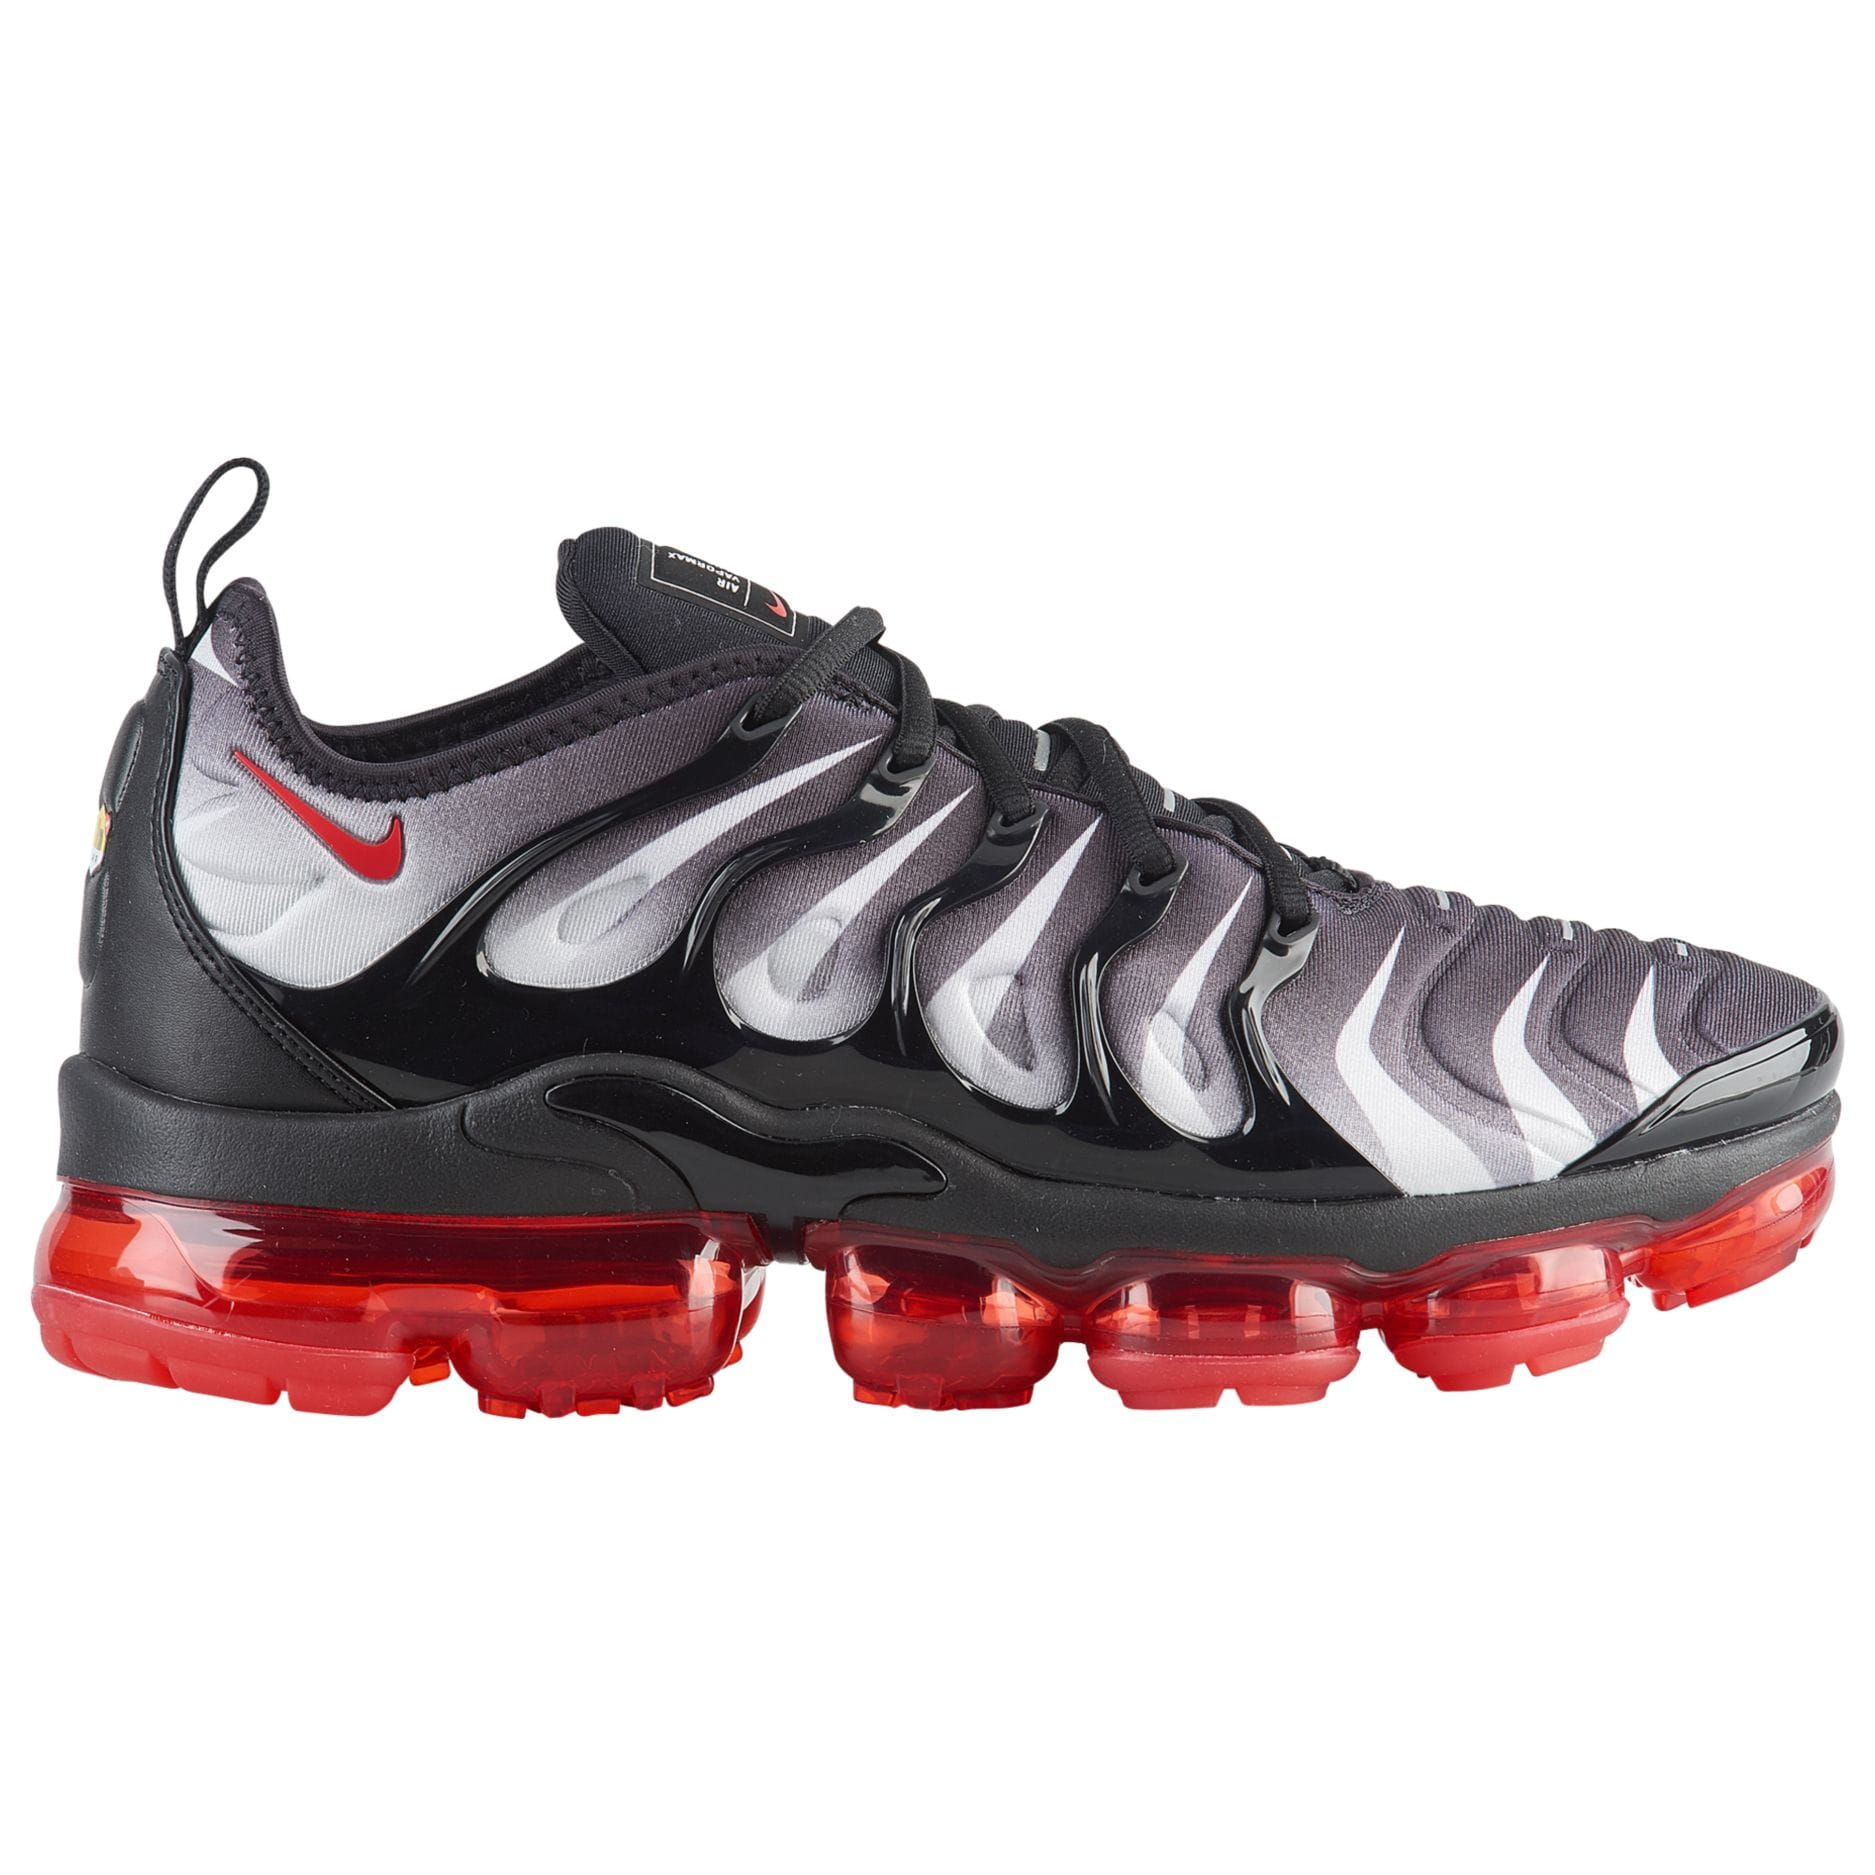 Nike Air Vapormax Plus Black Speed Red White Men s Shoes – Shoes ... 74148a78c3